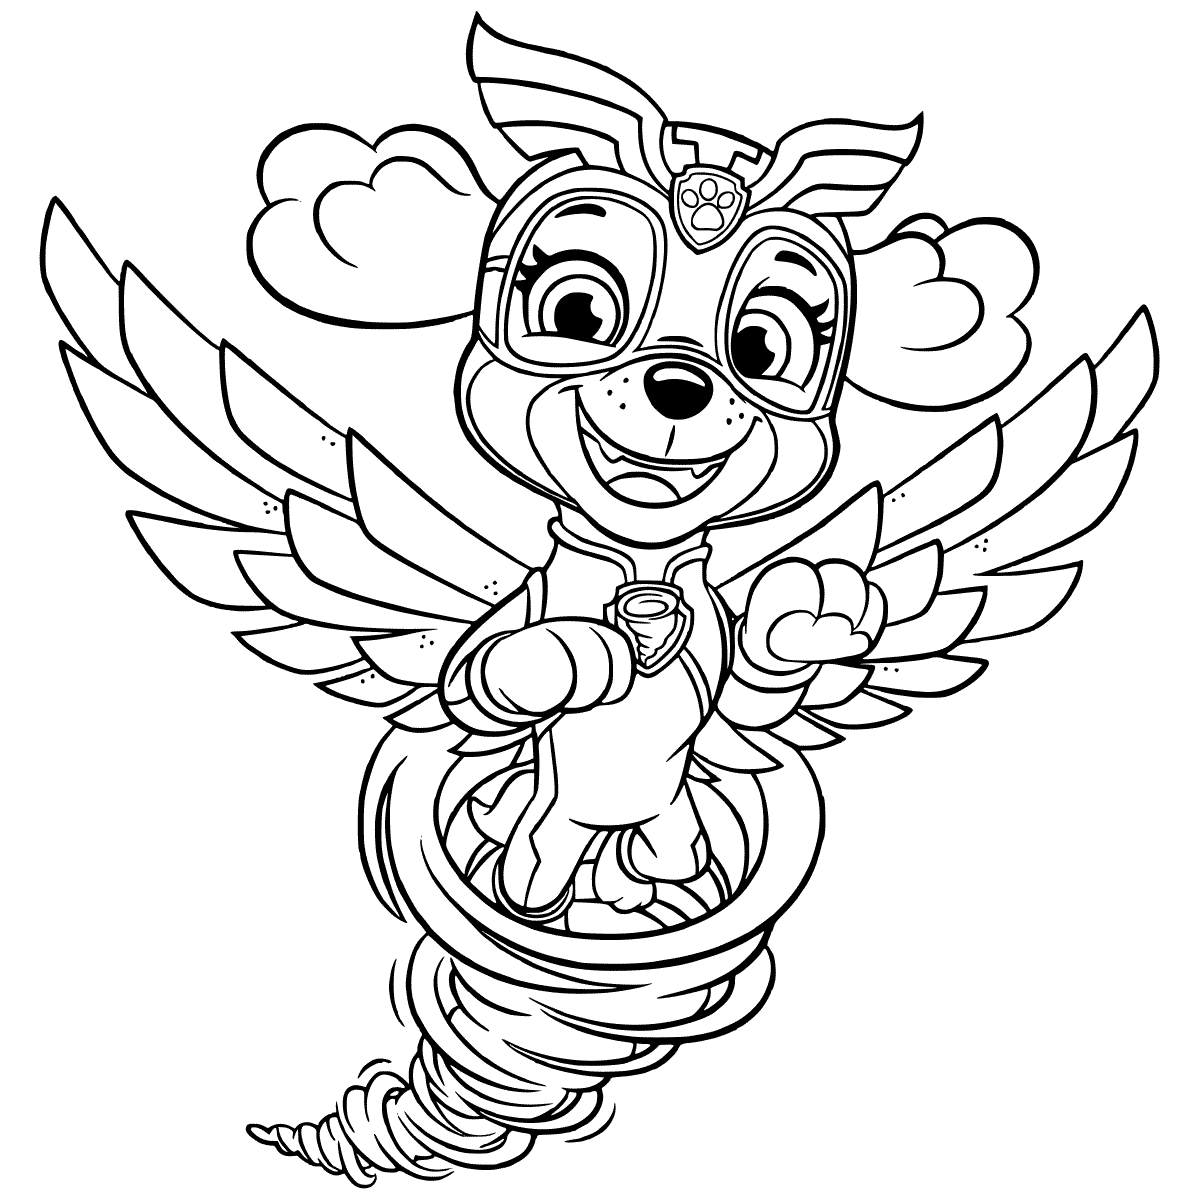 Cute Puppy Tornado Coloring Pages